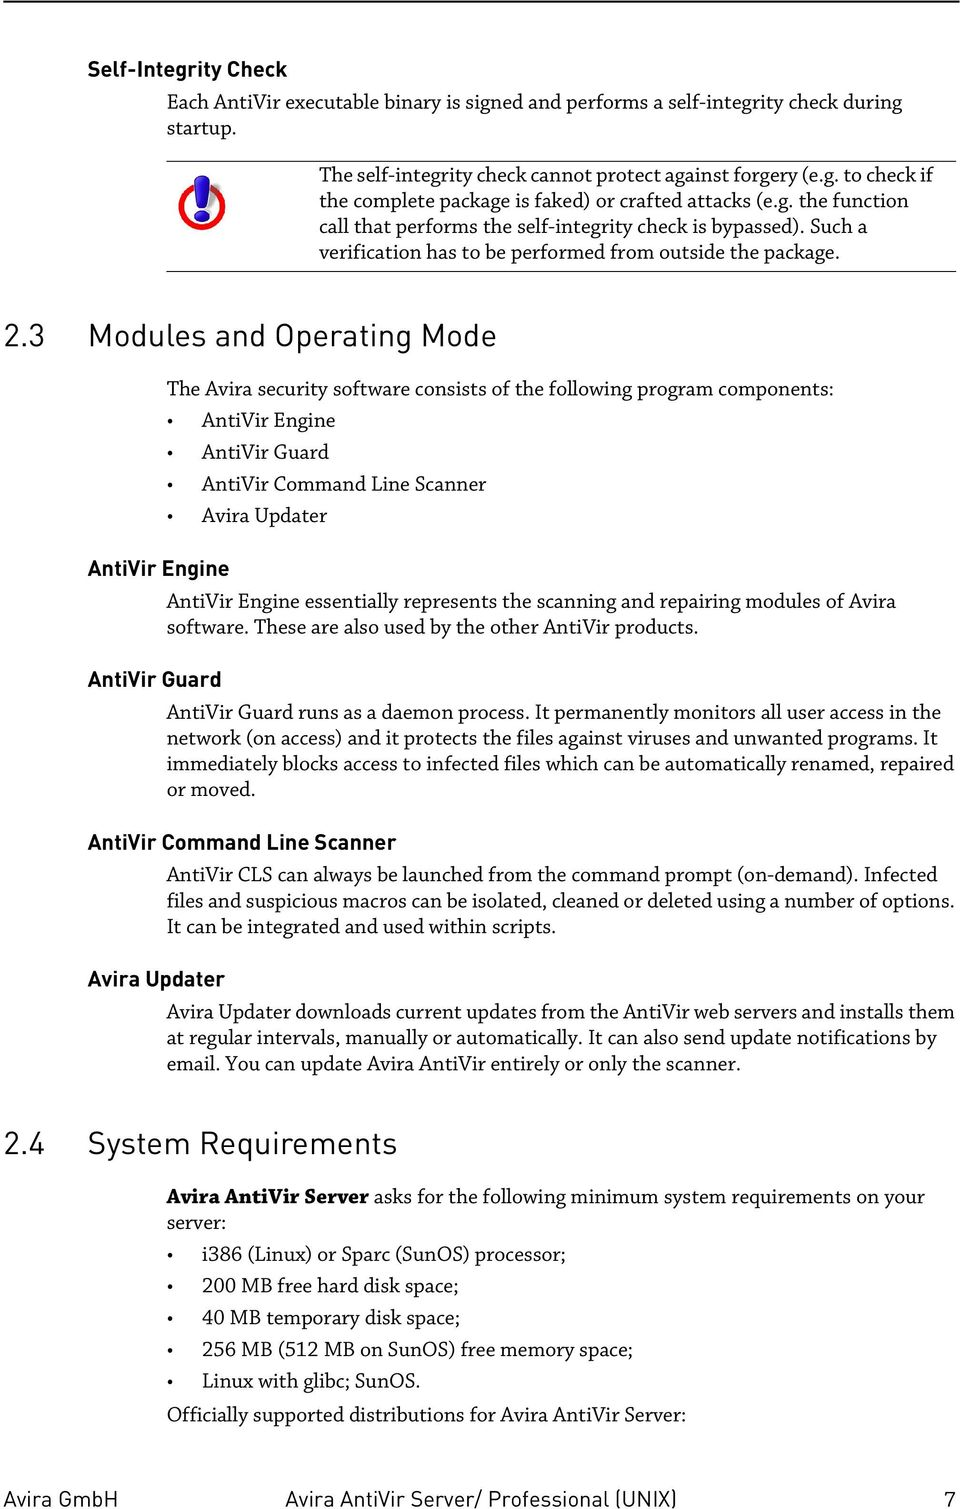 3 Modules and Operating Mode The Avira security software consists of the following program components: AntiVir Engine AntiVir Guard AntiVir Command Line Scanner Avira Updater AntiVir Engine AntiVir